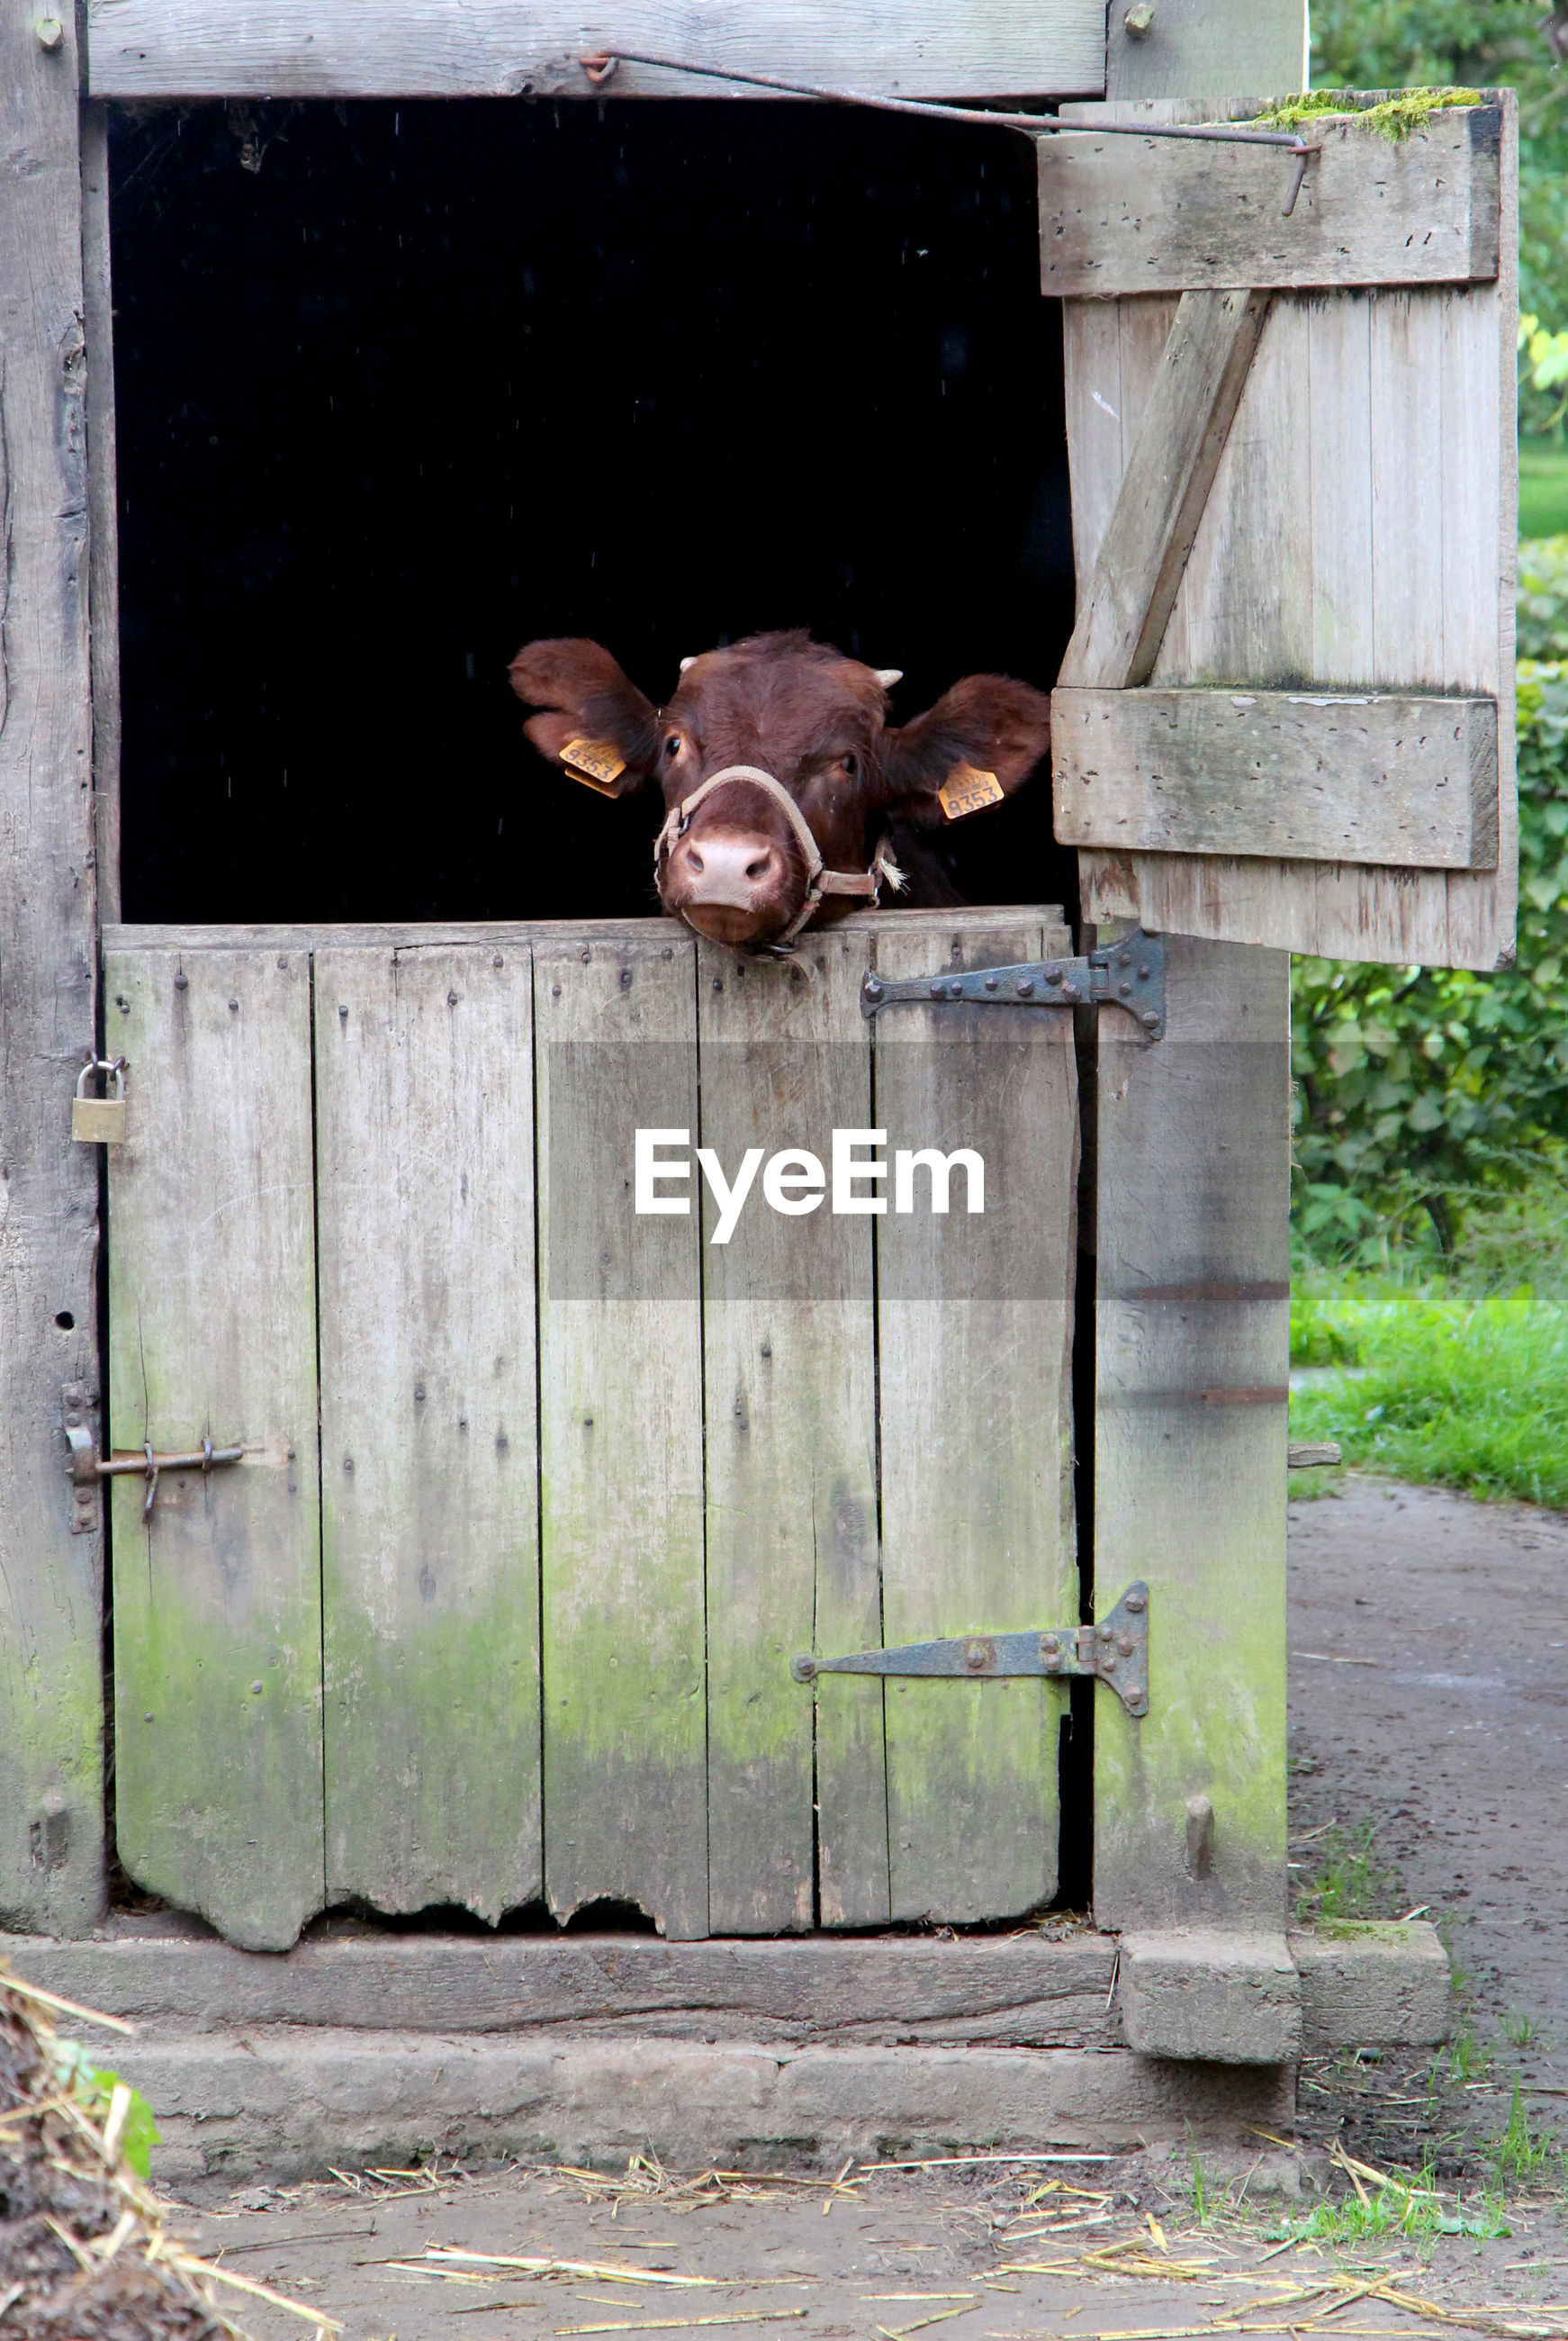 Domestic cattle seen at entrance of shed